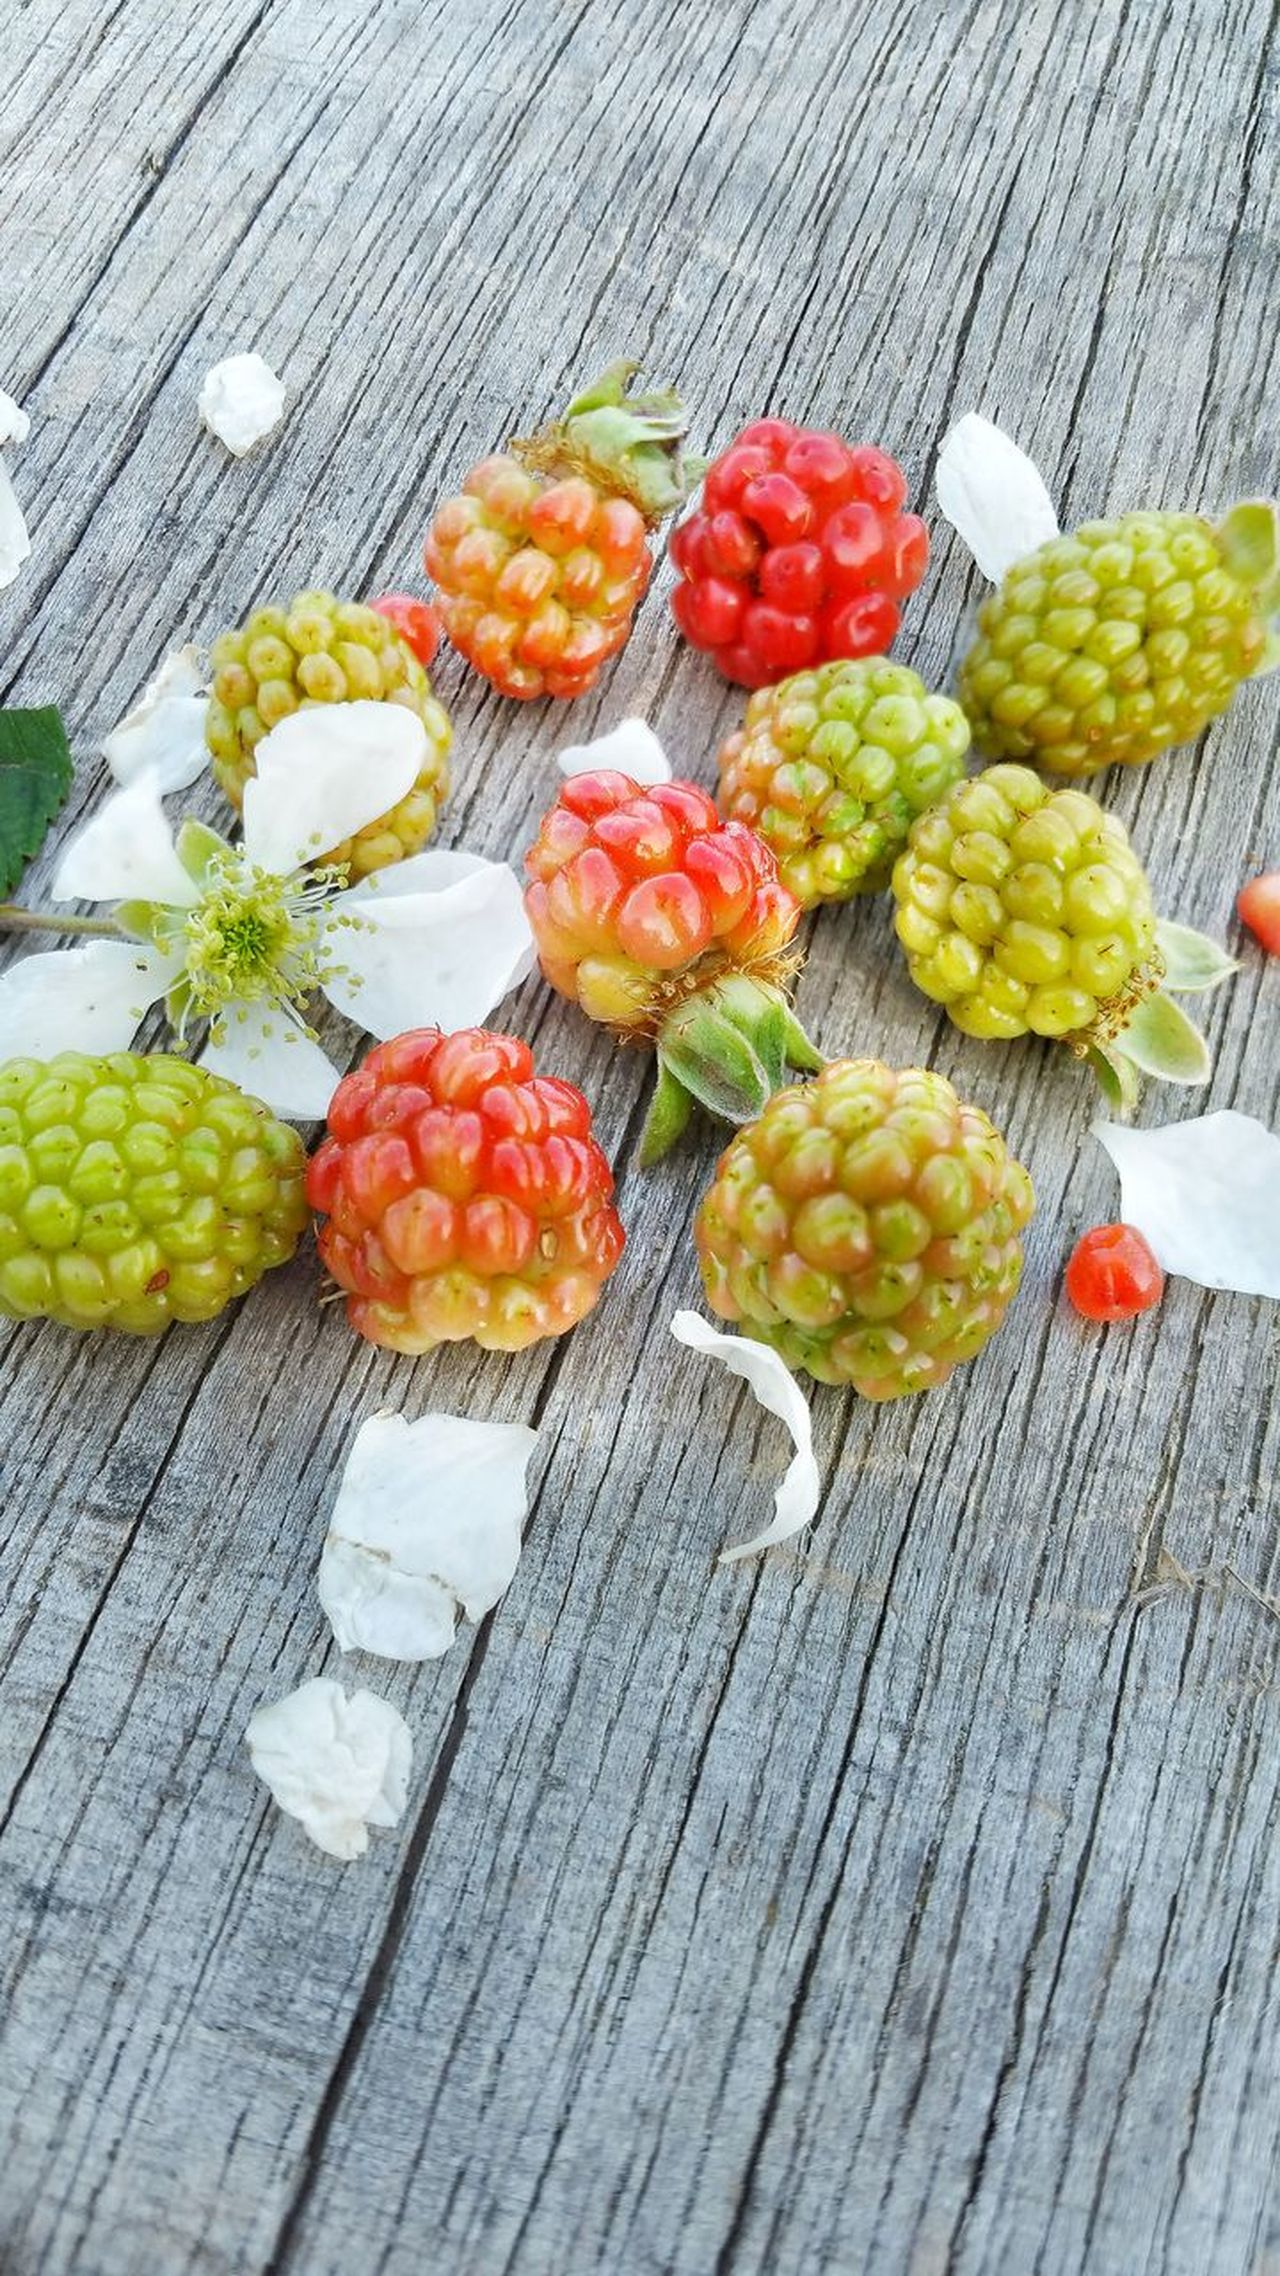 Close-up Berry Fruit Variation Day Outdoors Freshness Fruit Unripe Healthy Eating Nature Wild Berries High Angle View Room For Text Room For Copy Backgrounds Food Weathered Wood Blackberry Flower Ready-to-eat Group Wild Blackberries Dew Berries Bunch Wood - Material Visual Feast